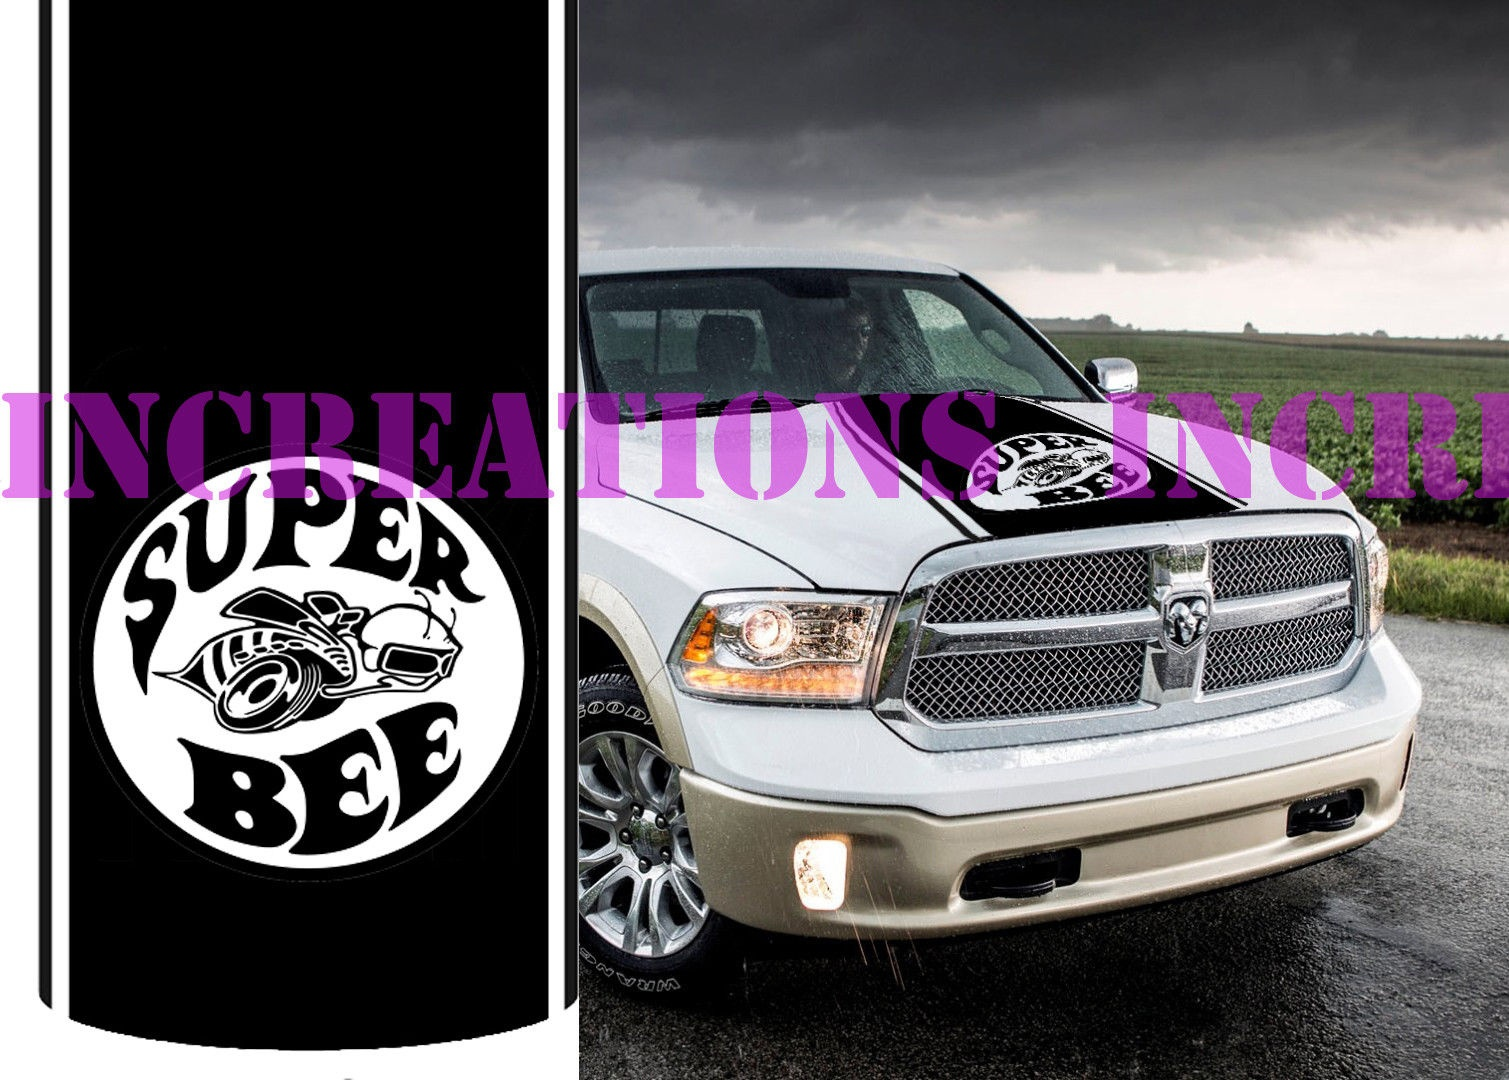 hight resolution of for universal super bee dodge ram hemi rebel sport hood stripe vinyl decal truck racing in car stickers from automobiles motorcycles on aliexpress com